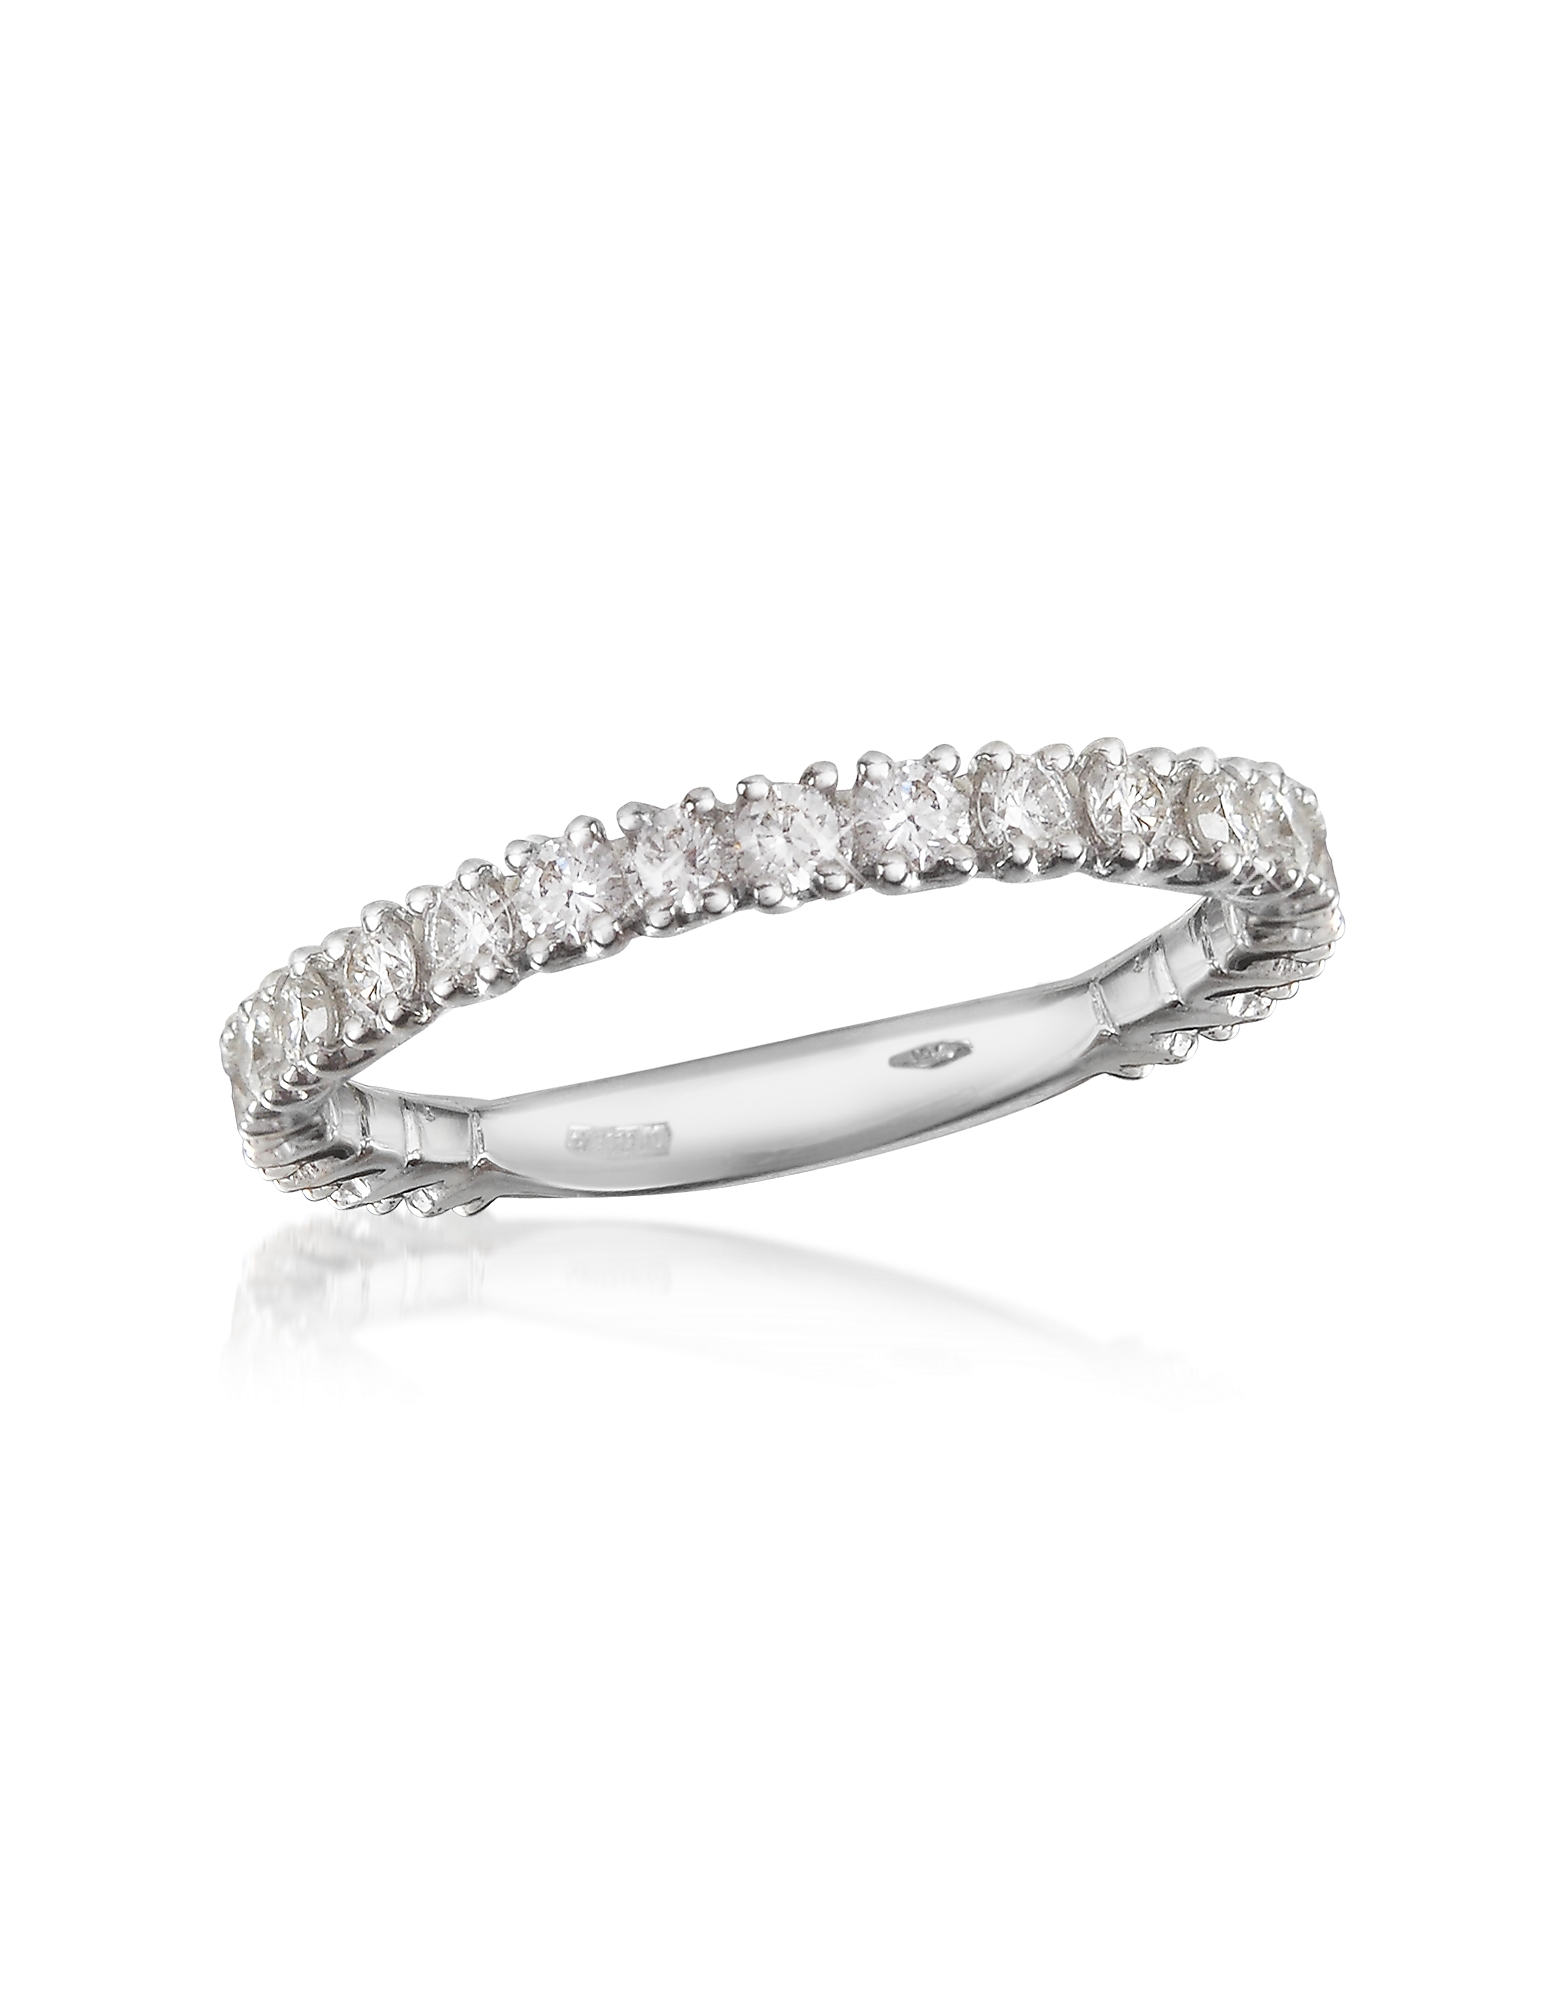 Forzieri Designer Rings, 0.74 ct Diamond 18K Gold Eternity Band